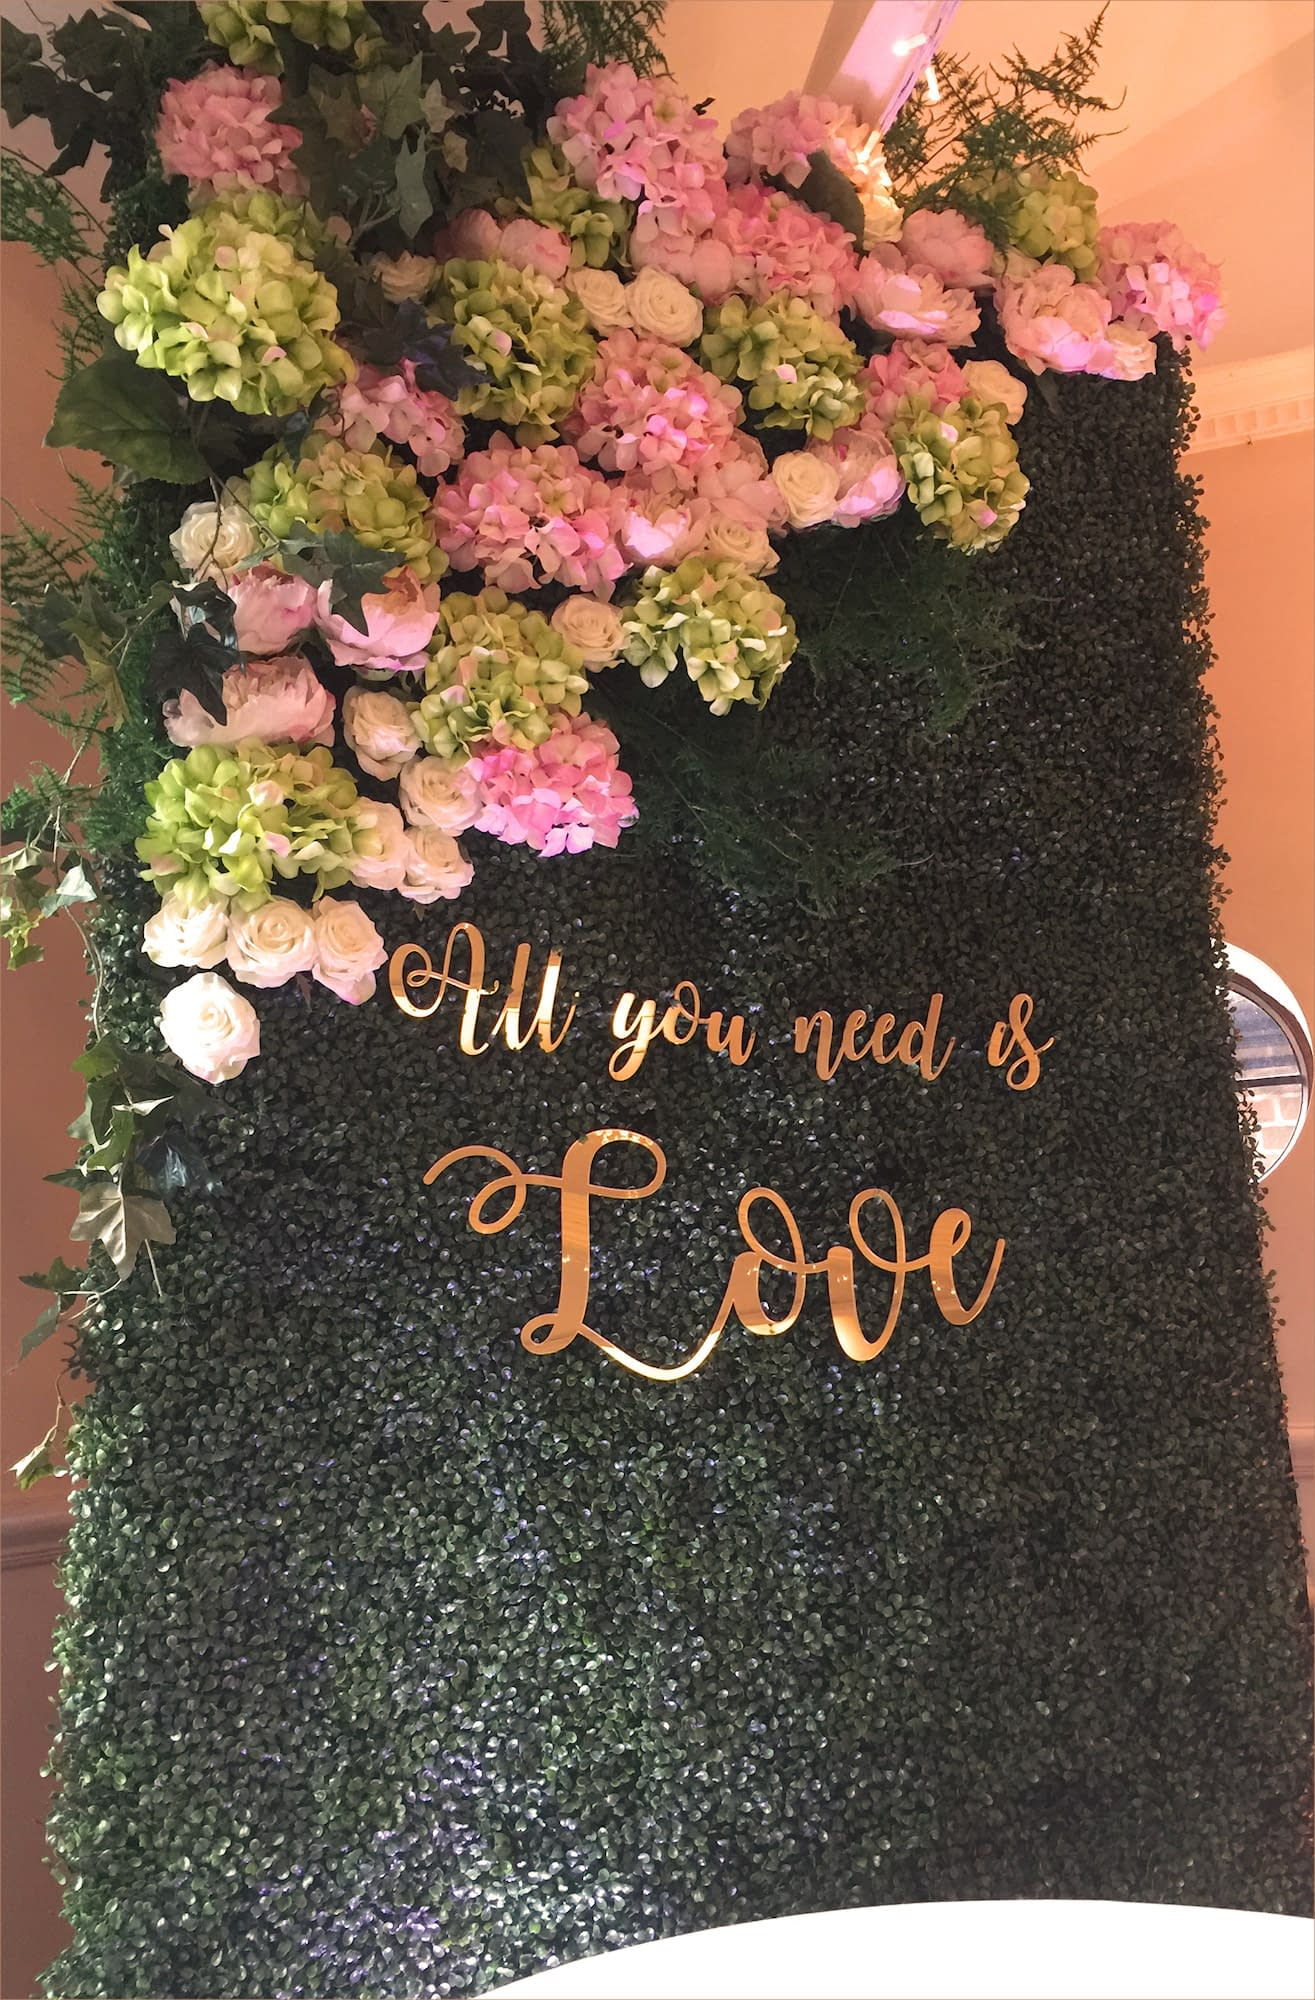 Box hedge photo backdrop with blush flowers to the top and all you need is love caption in gold